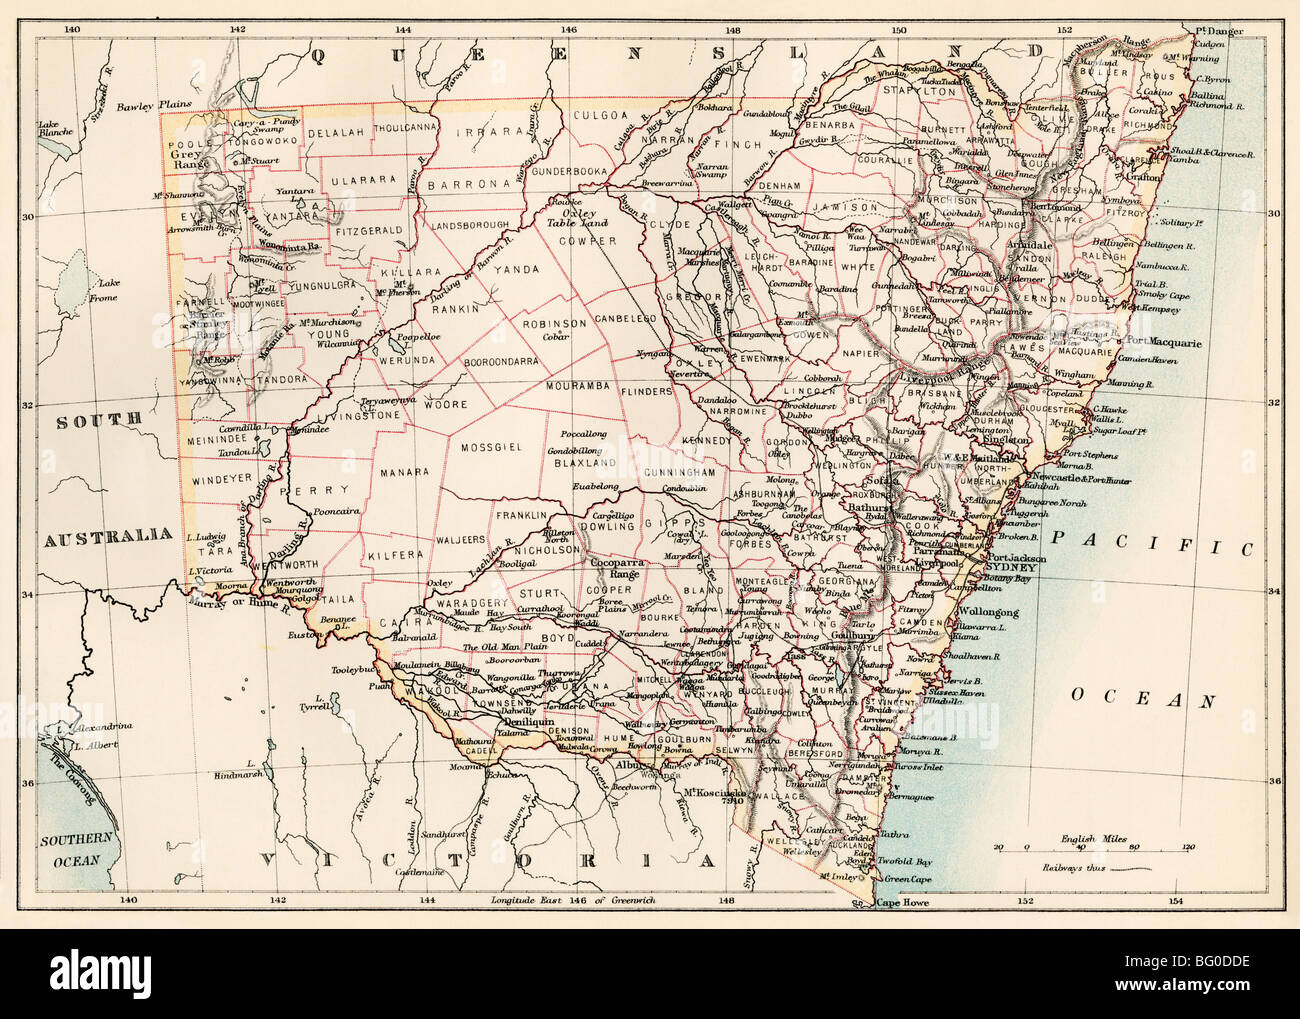 Map of New South Wales, Australia, 1870s. Color lithograph - Stock Image